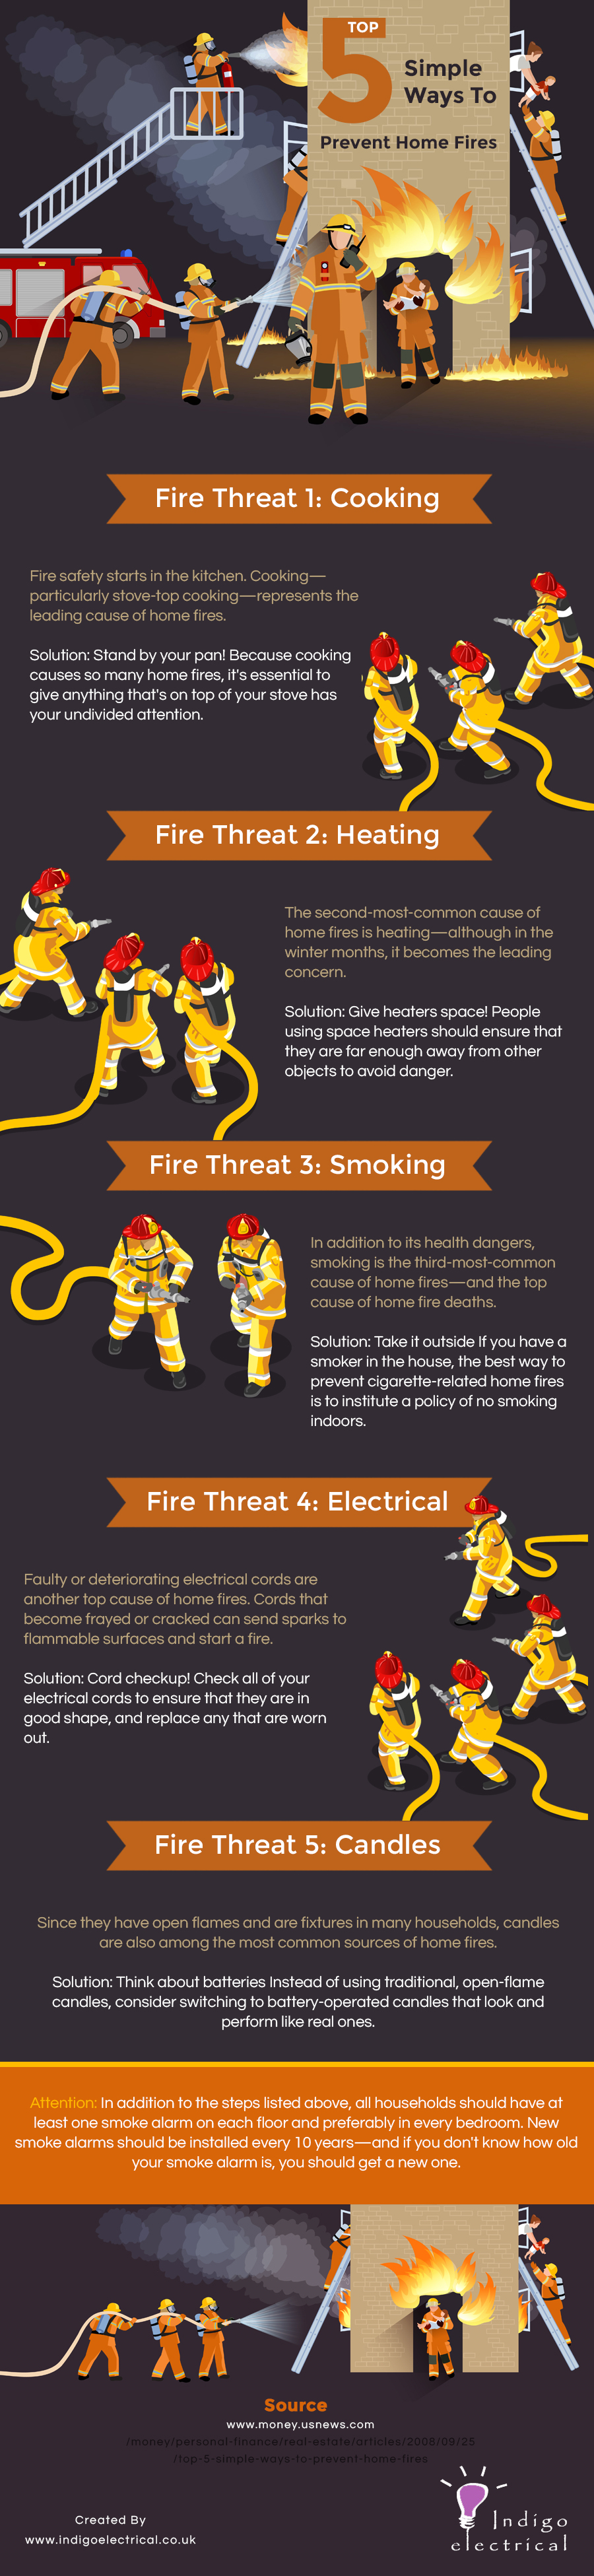 Top 5 Simple Ways to Prevent Home Fires